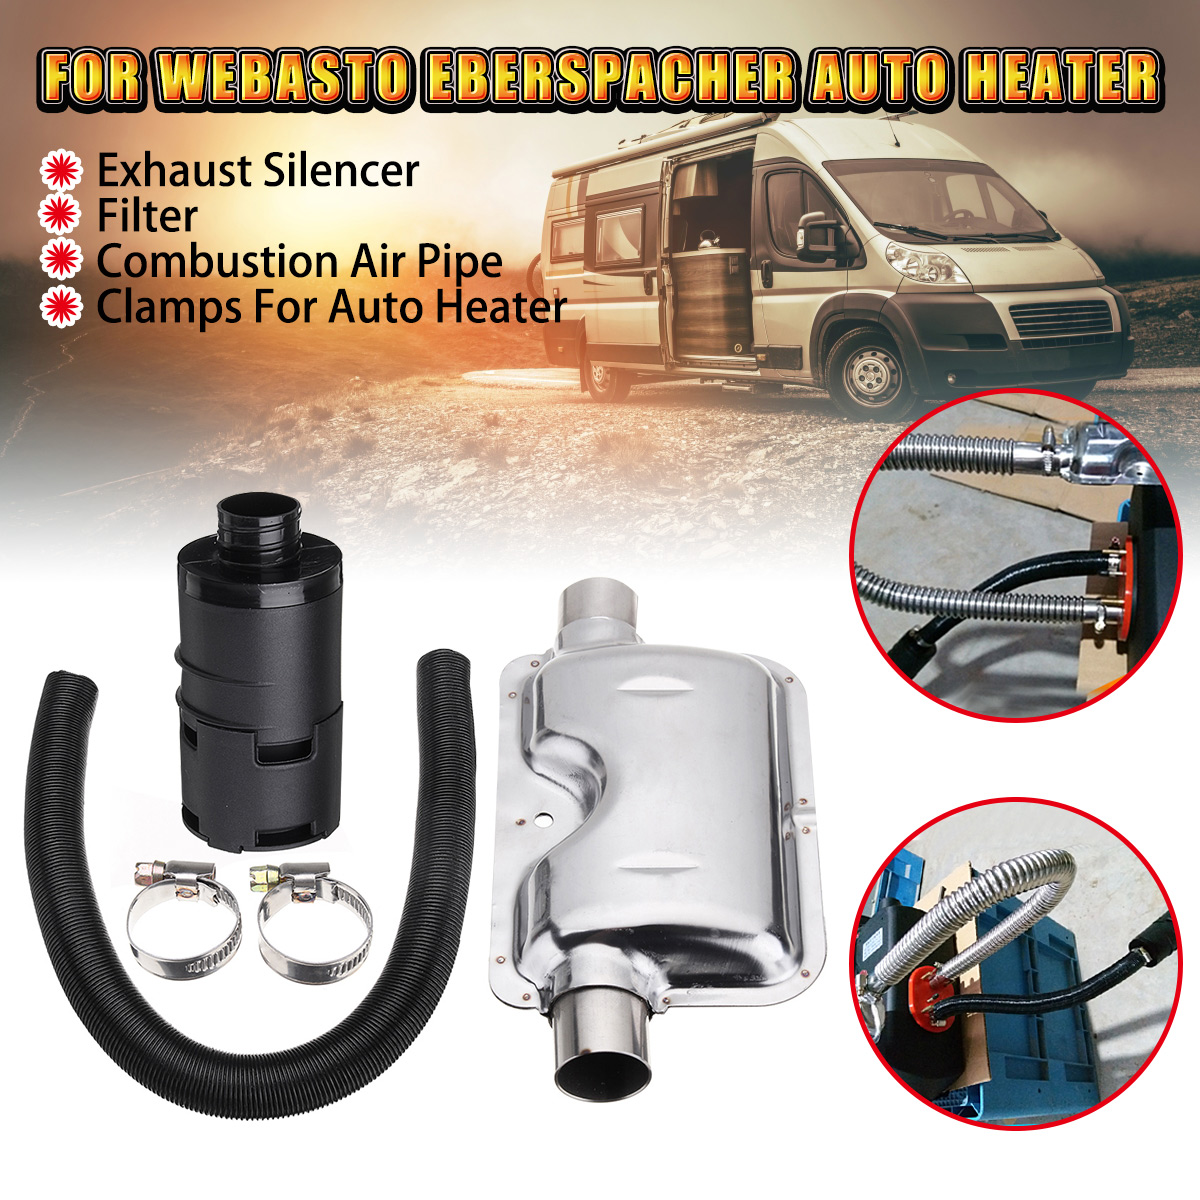 3Pcs 24mm Exhaust Silencer+25mm Filter+Combustion Air Intake Filter Pipe Throat Hoop Clamps for Webasto Eberspacher Auto Heater